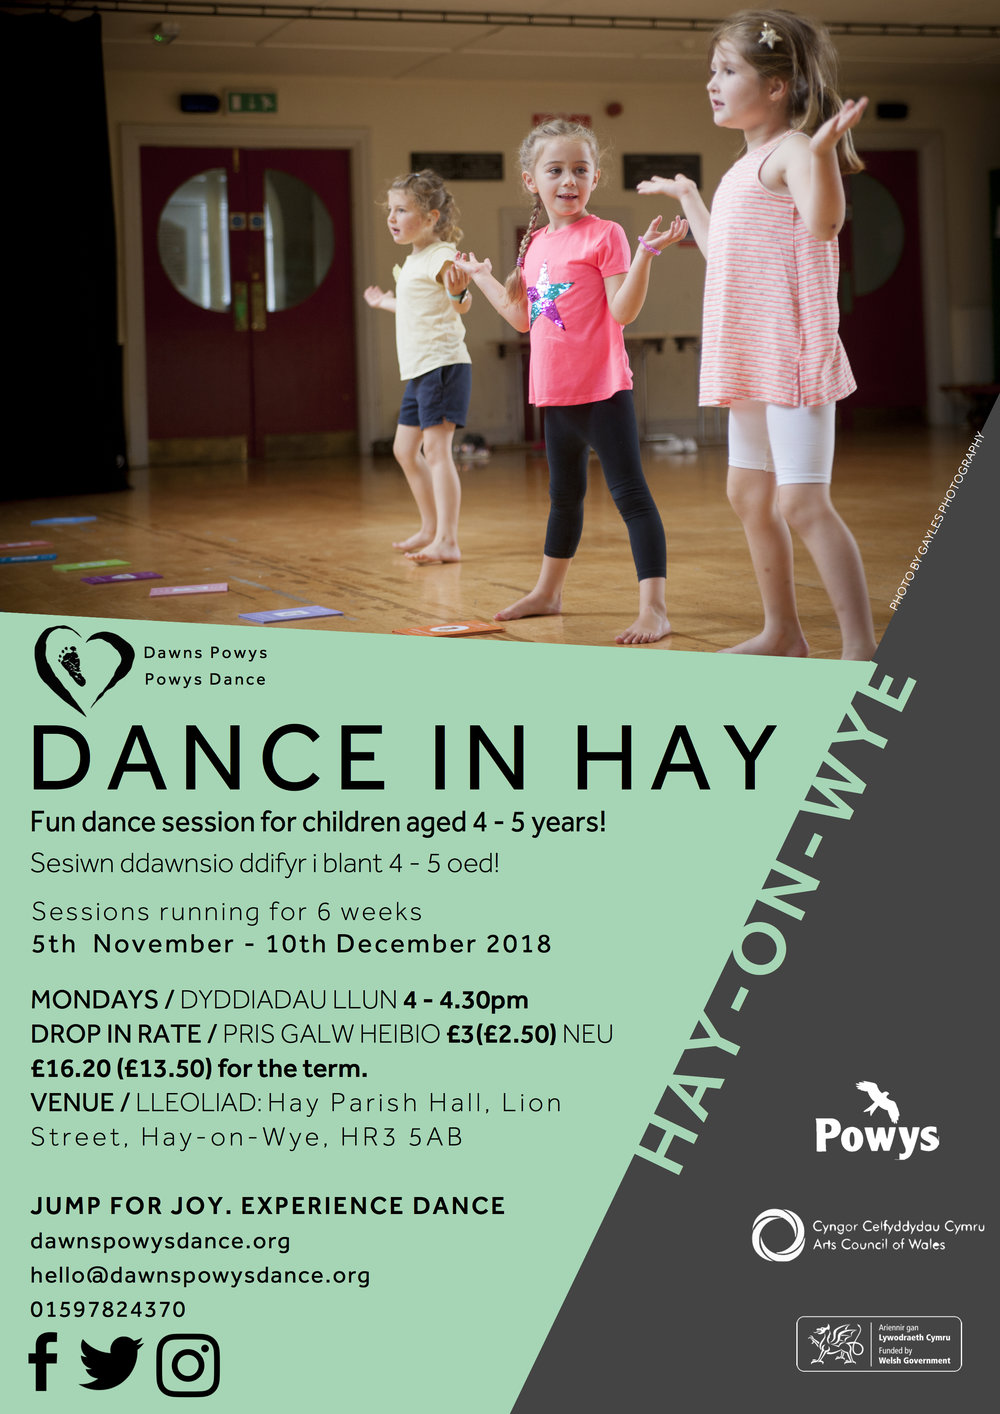 Dance in Hay 2018 4 - 5 YEARS.jpg